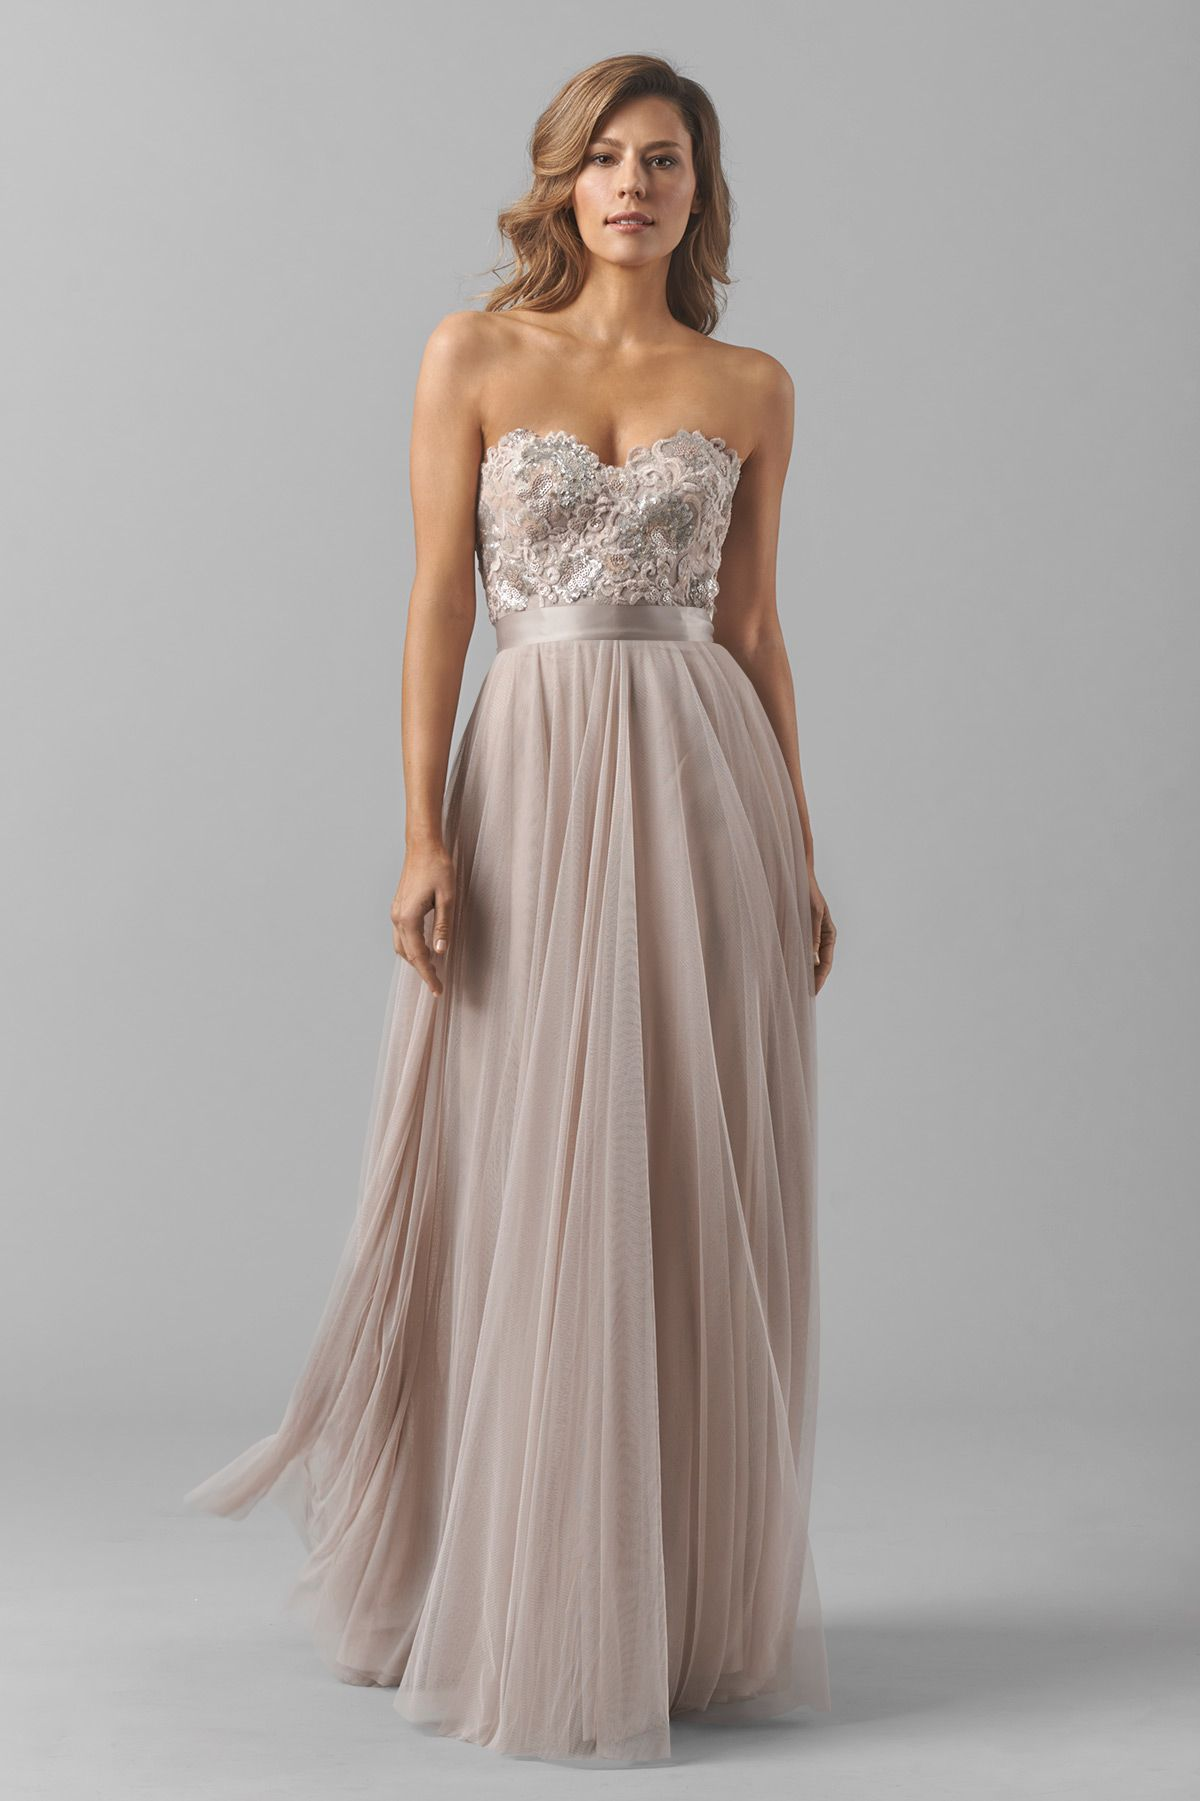 Watters maids dress brescia dress brescia style 6317i dress find the perfect made to order bridesmaid dresses for your bridal party in your favorite color style and fabric at weddington way ombrellifo Choice Image